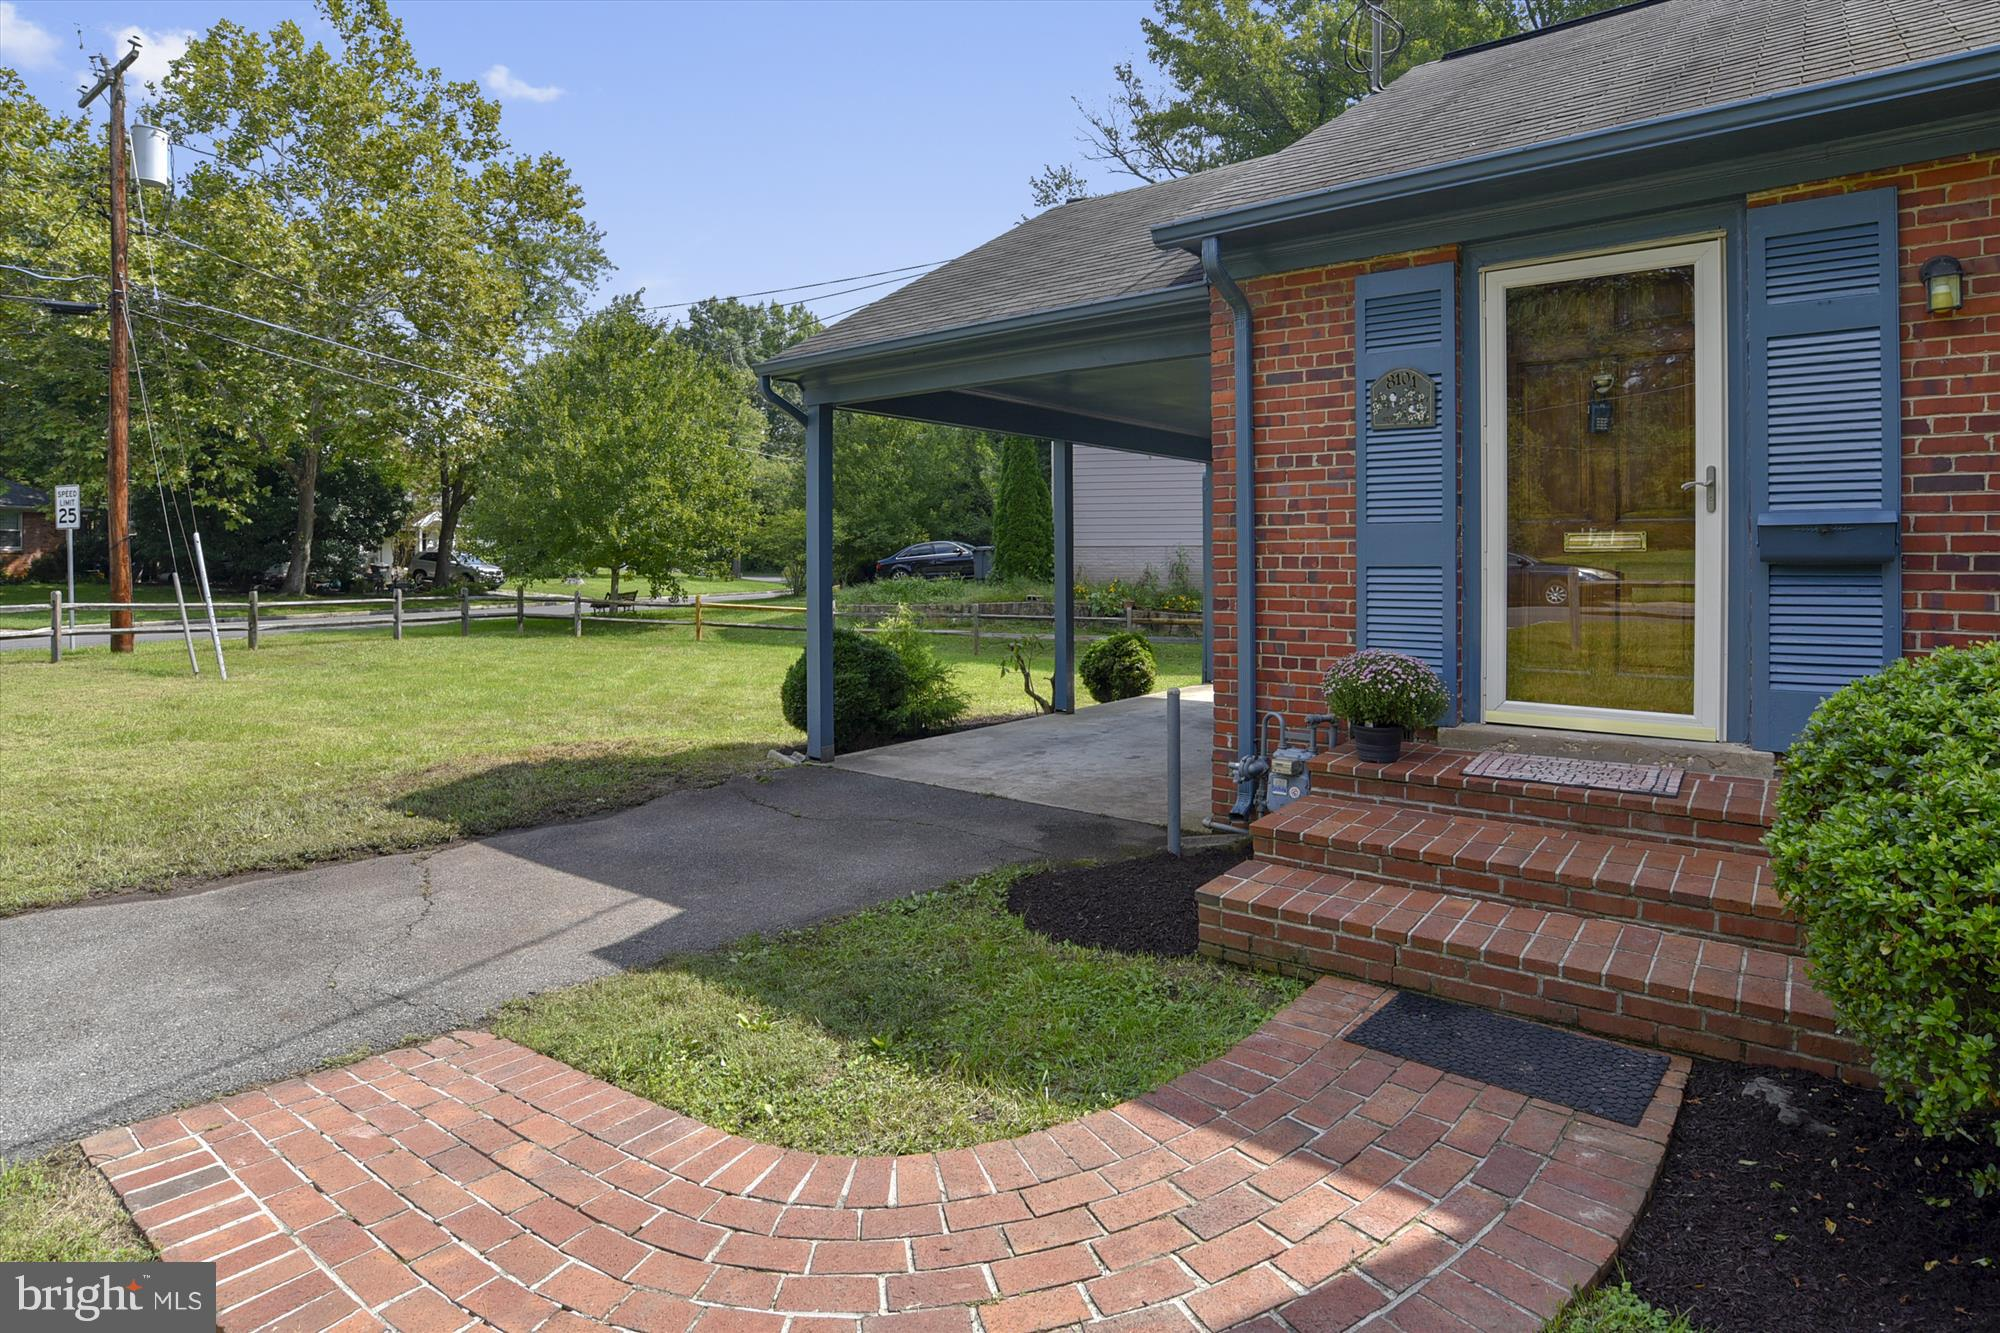 OPEN SAT & SUN 1 to 3 PM. Hurry over to 3 BR 2 BA home on a quiet corner lot in Hollin Hall Village w/driveway, & carport. Under 500K. Comfortable home in good shape w/rare front wall LR fireplace. New paint throughout. Refinished hardwoods in LR, DR and 2 BRs. Waynewood school district. 5 minute walk thru the woods next door to Mt Vernon Pool (membership required) Gas heat and cooking.